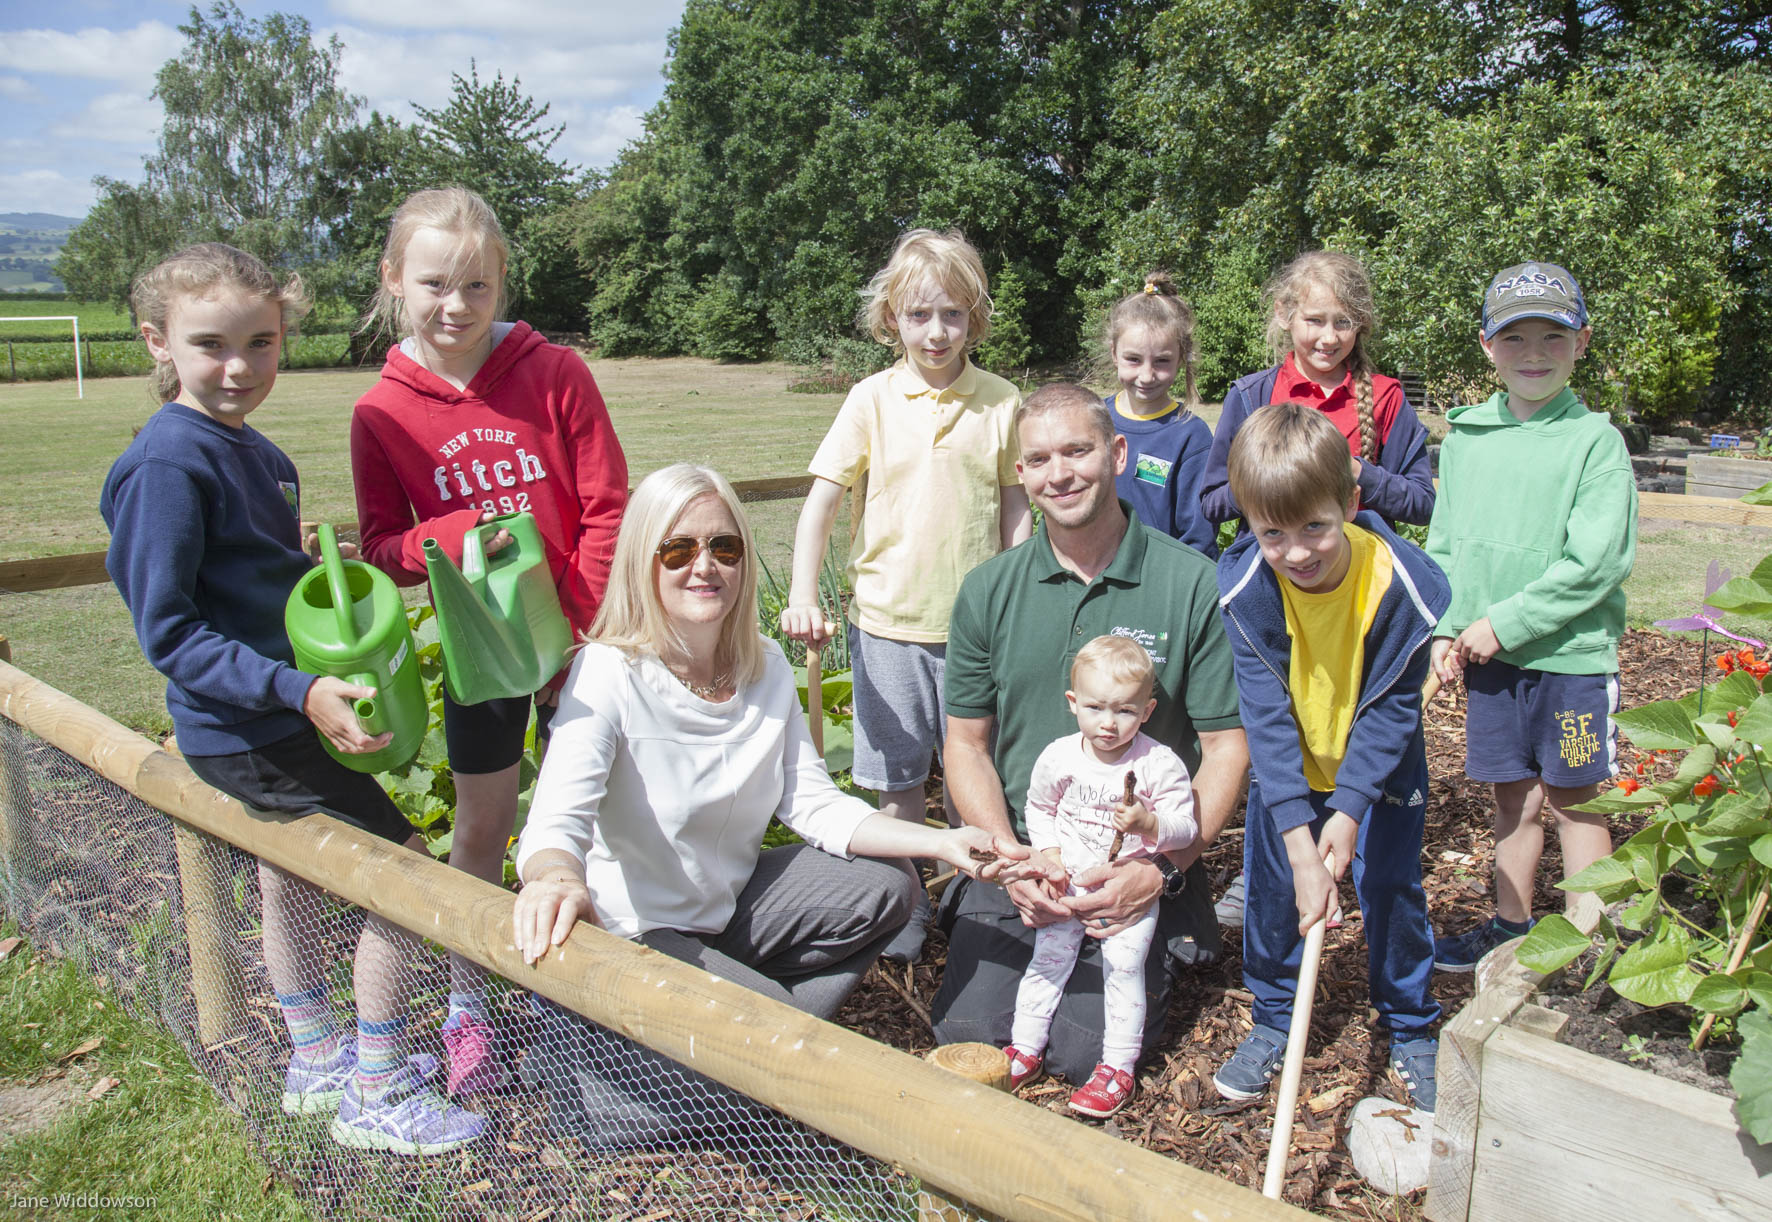 Members of the Llanbedr School Eco Group show off their garden to Clifford Jones Timber Director Sarah Jones Smith and Production Supervisor Michael Beaumont, a parent at the school, pictured with his daughter, Lilou, 18 months, Grace Meyman, 8, Beatrice Marston, 10, Harry Benjamin Williams, 8, Luciana Farinha, 9, Zoe Maddock, 8, Rhys Jones, 7, and Madoc Cotter, 7.